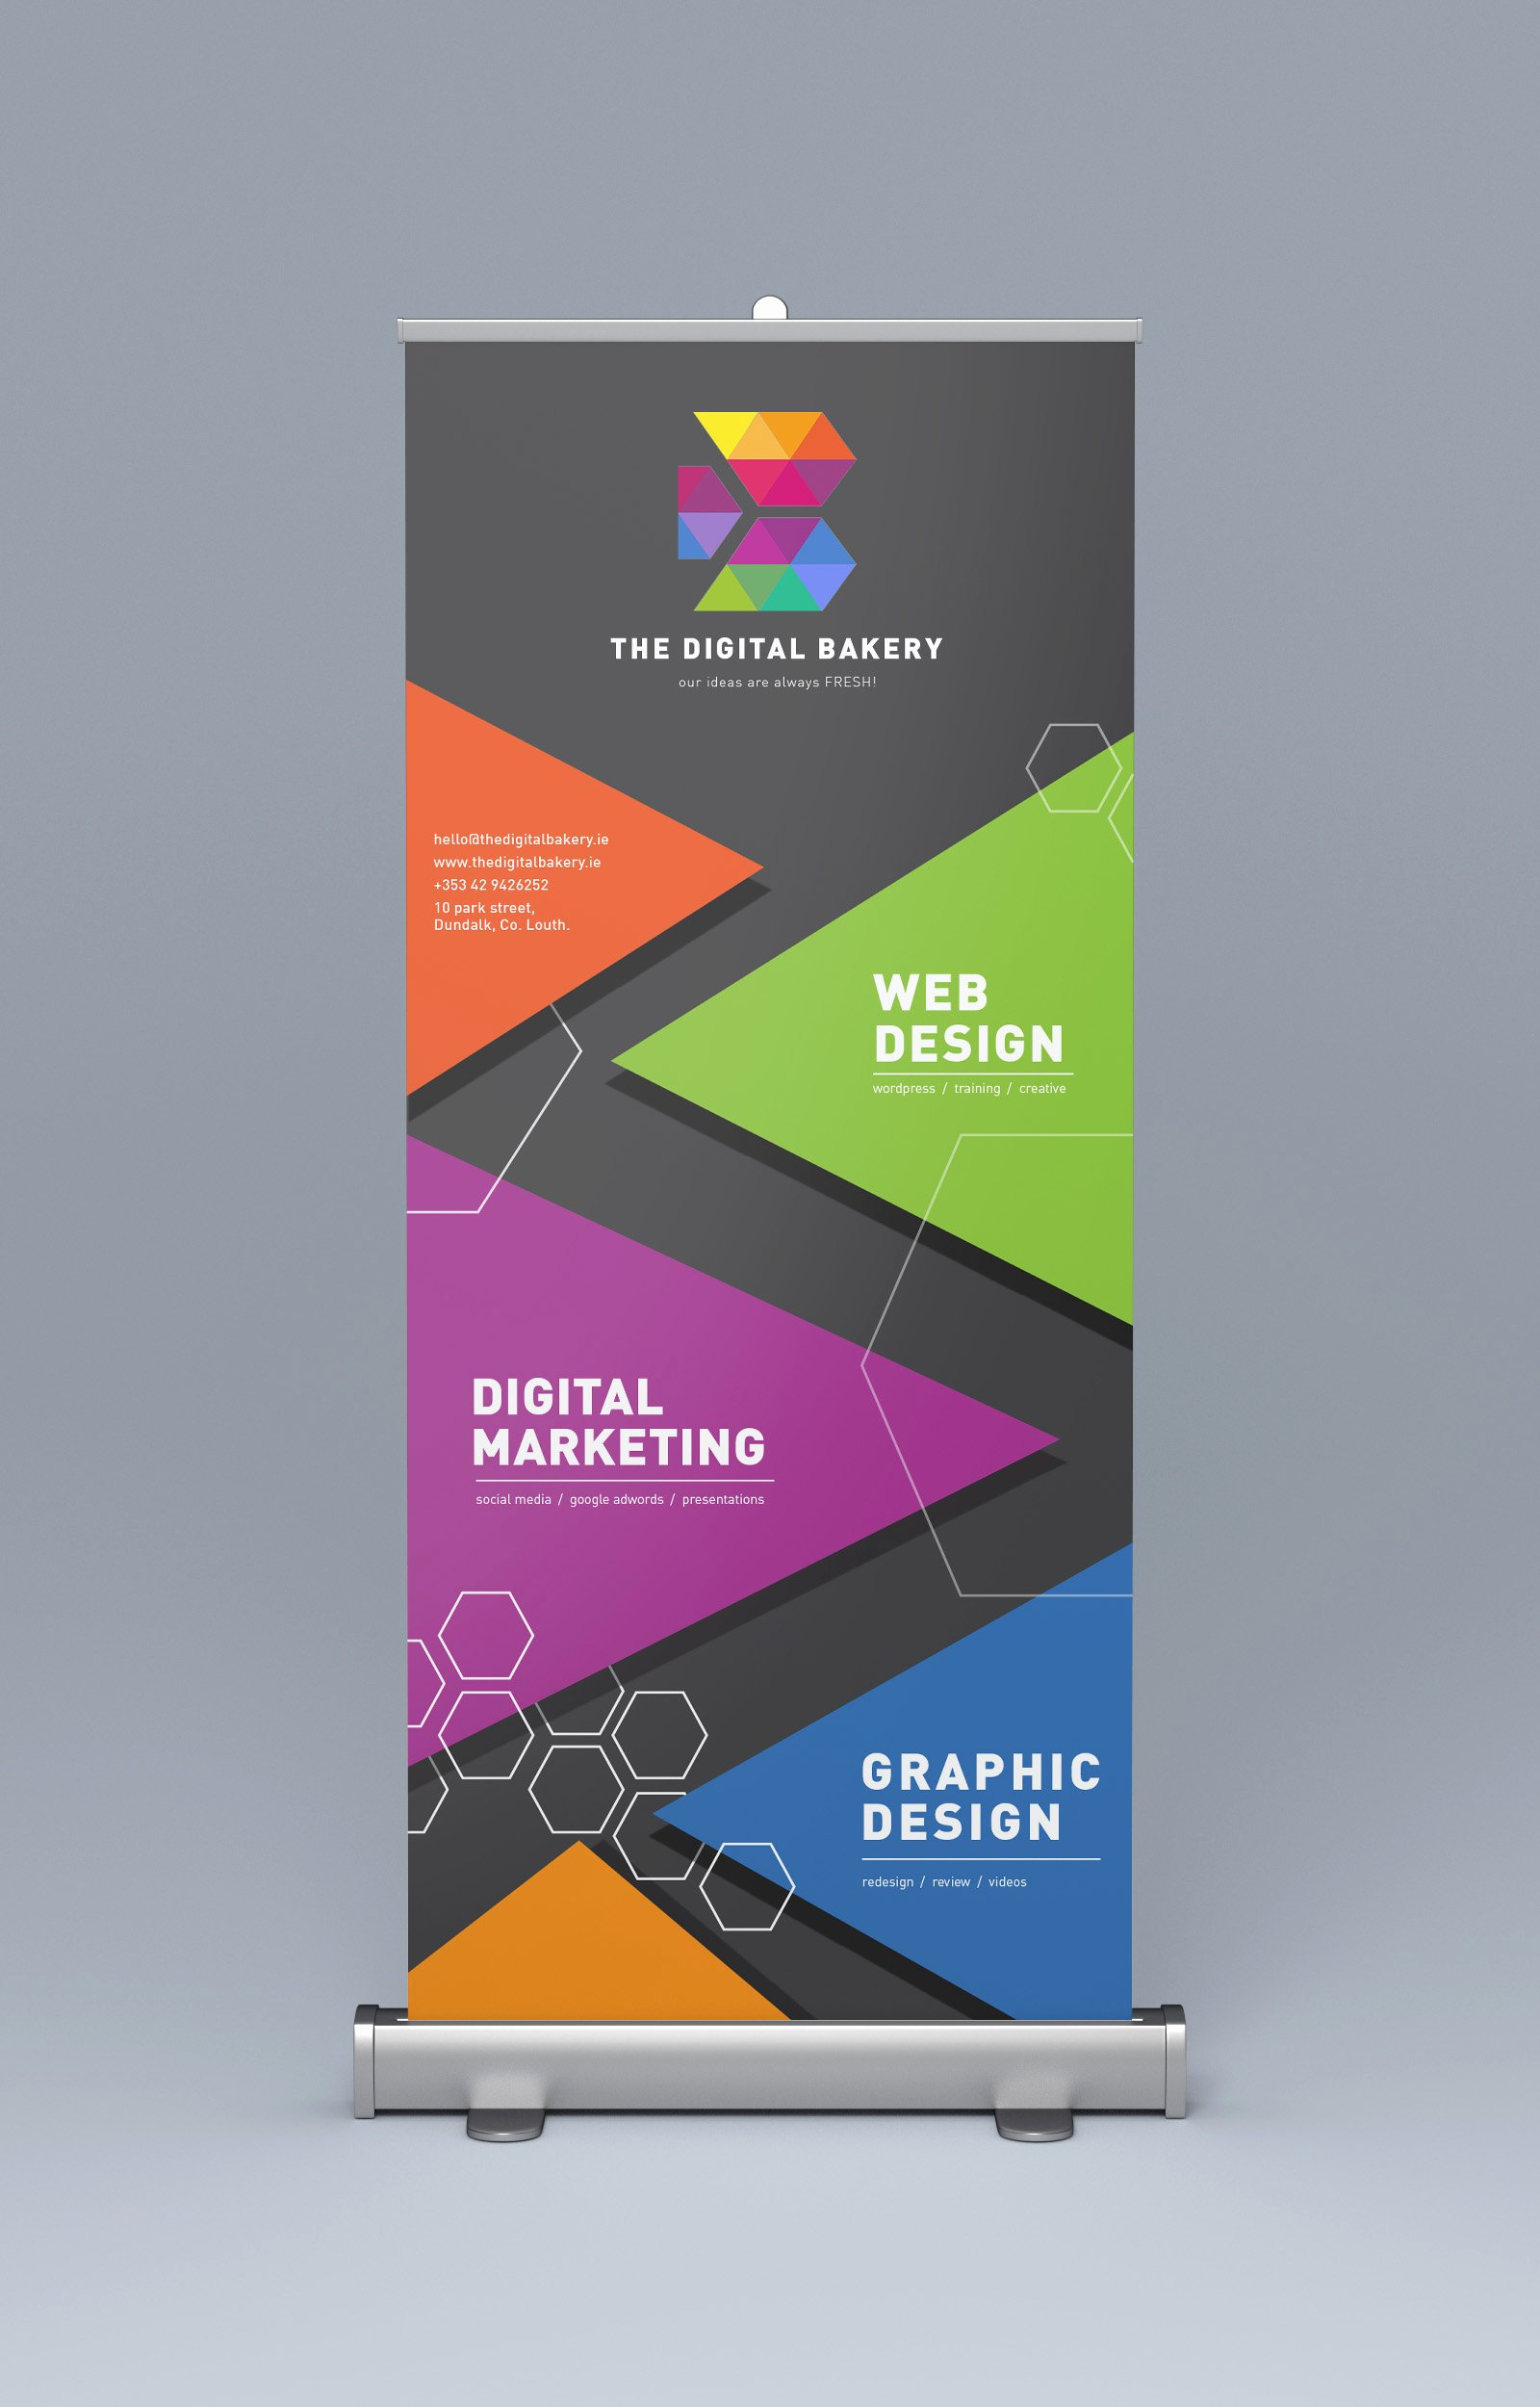 Pull Up Banners Design Fresh Pull Up Banner – the Digital Bakery the Digital Bakery